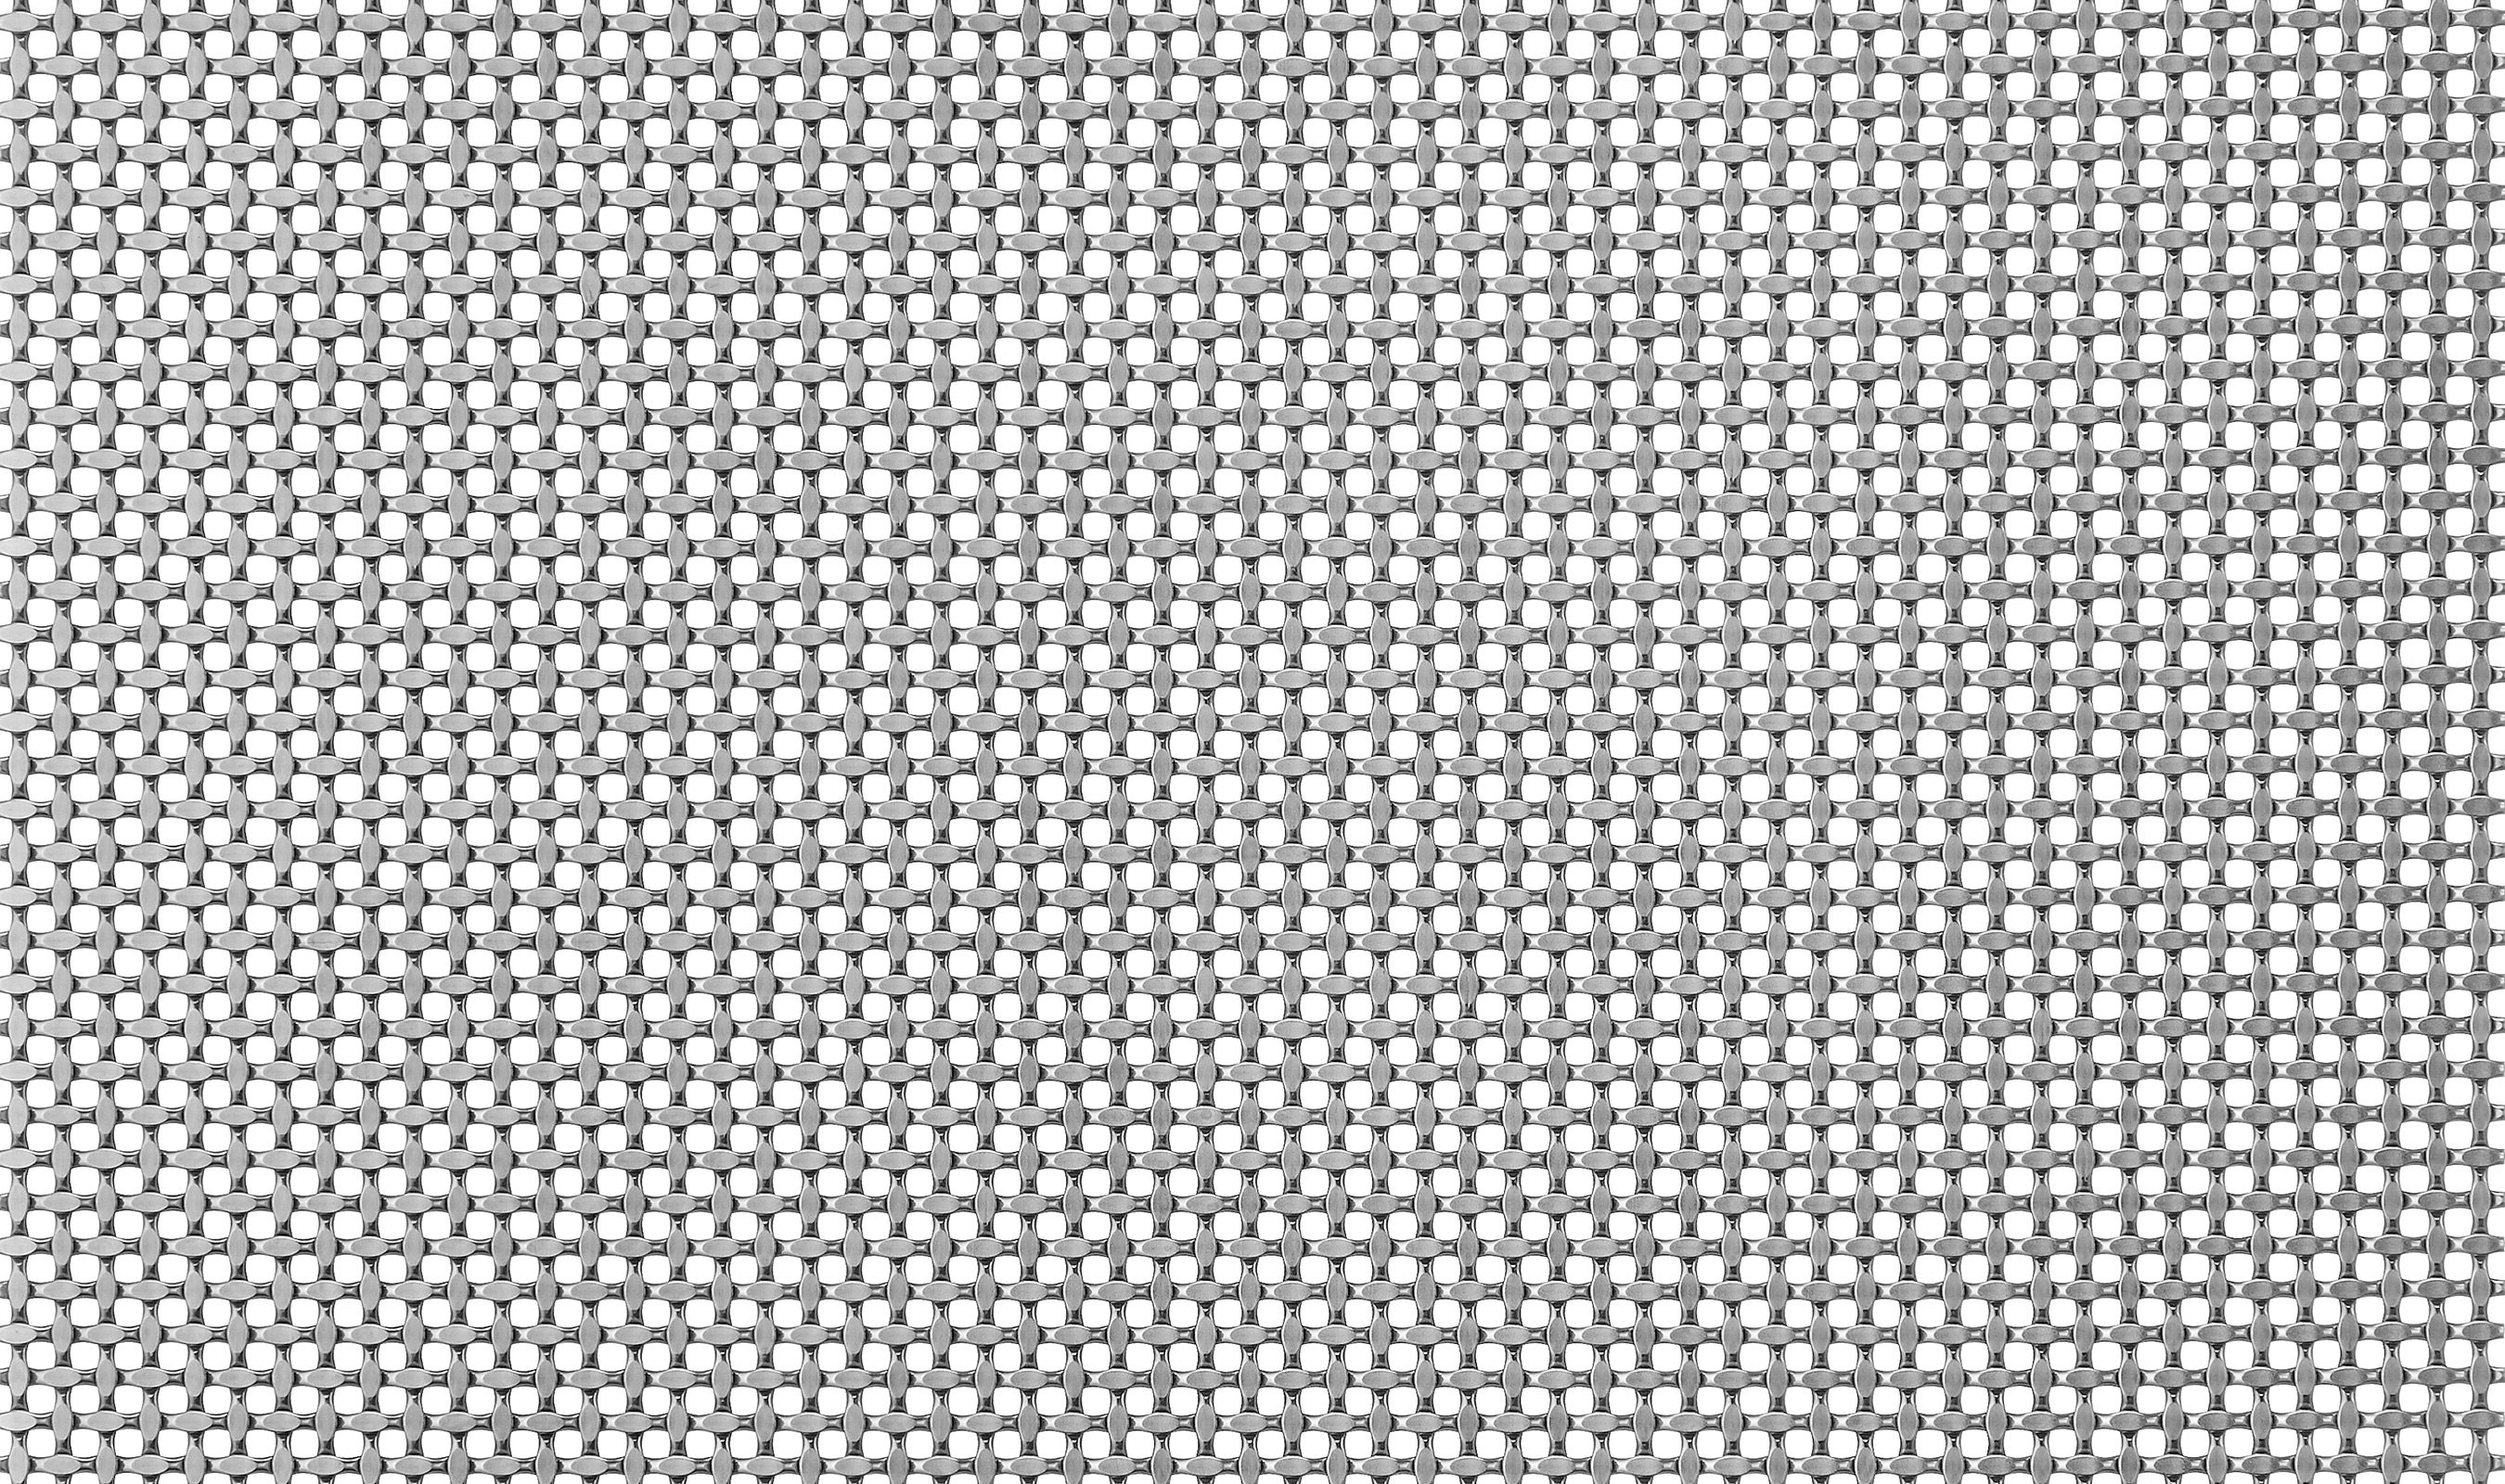 S-55 fine woven wire mesh in stainless steel.